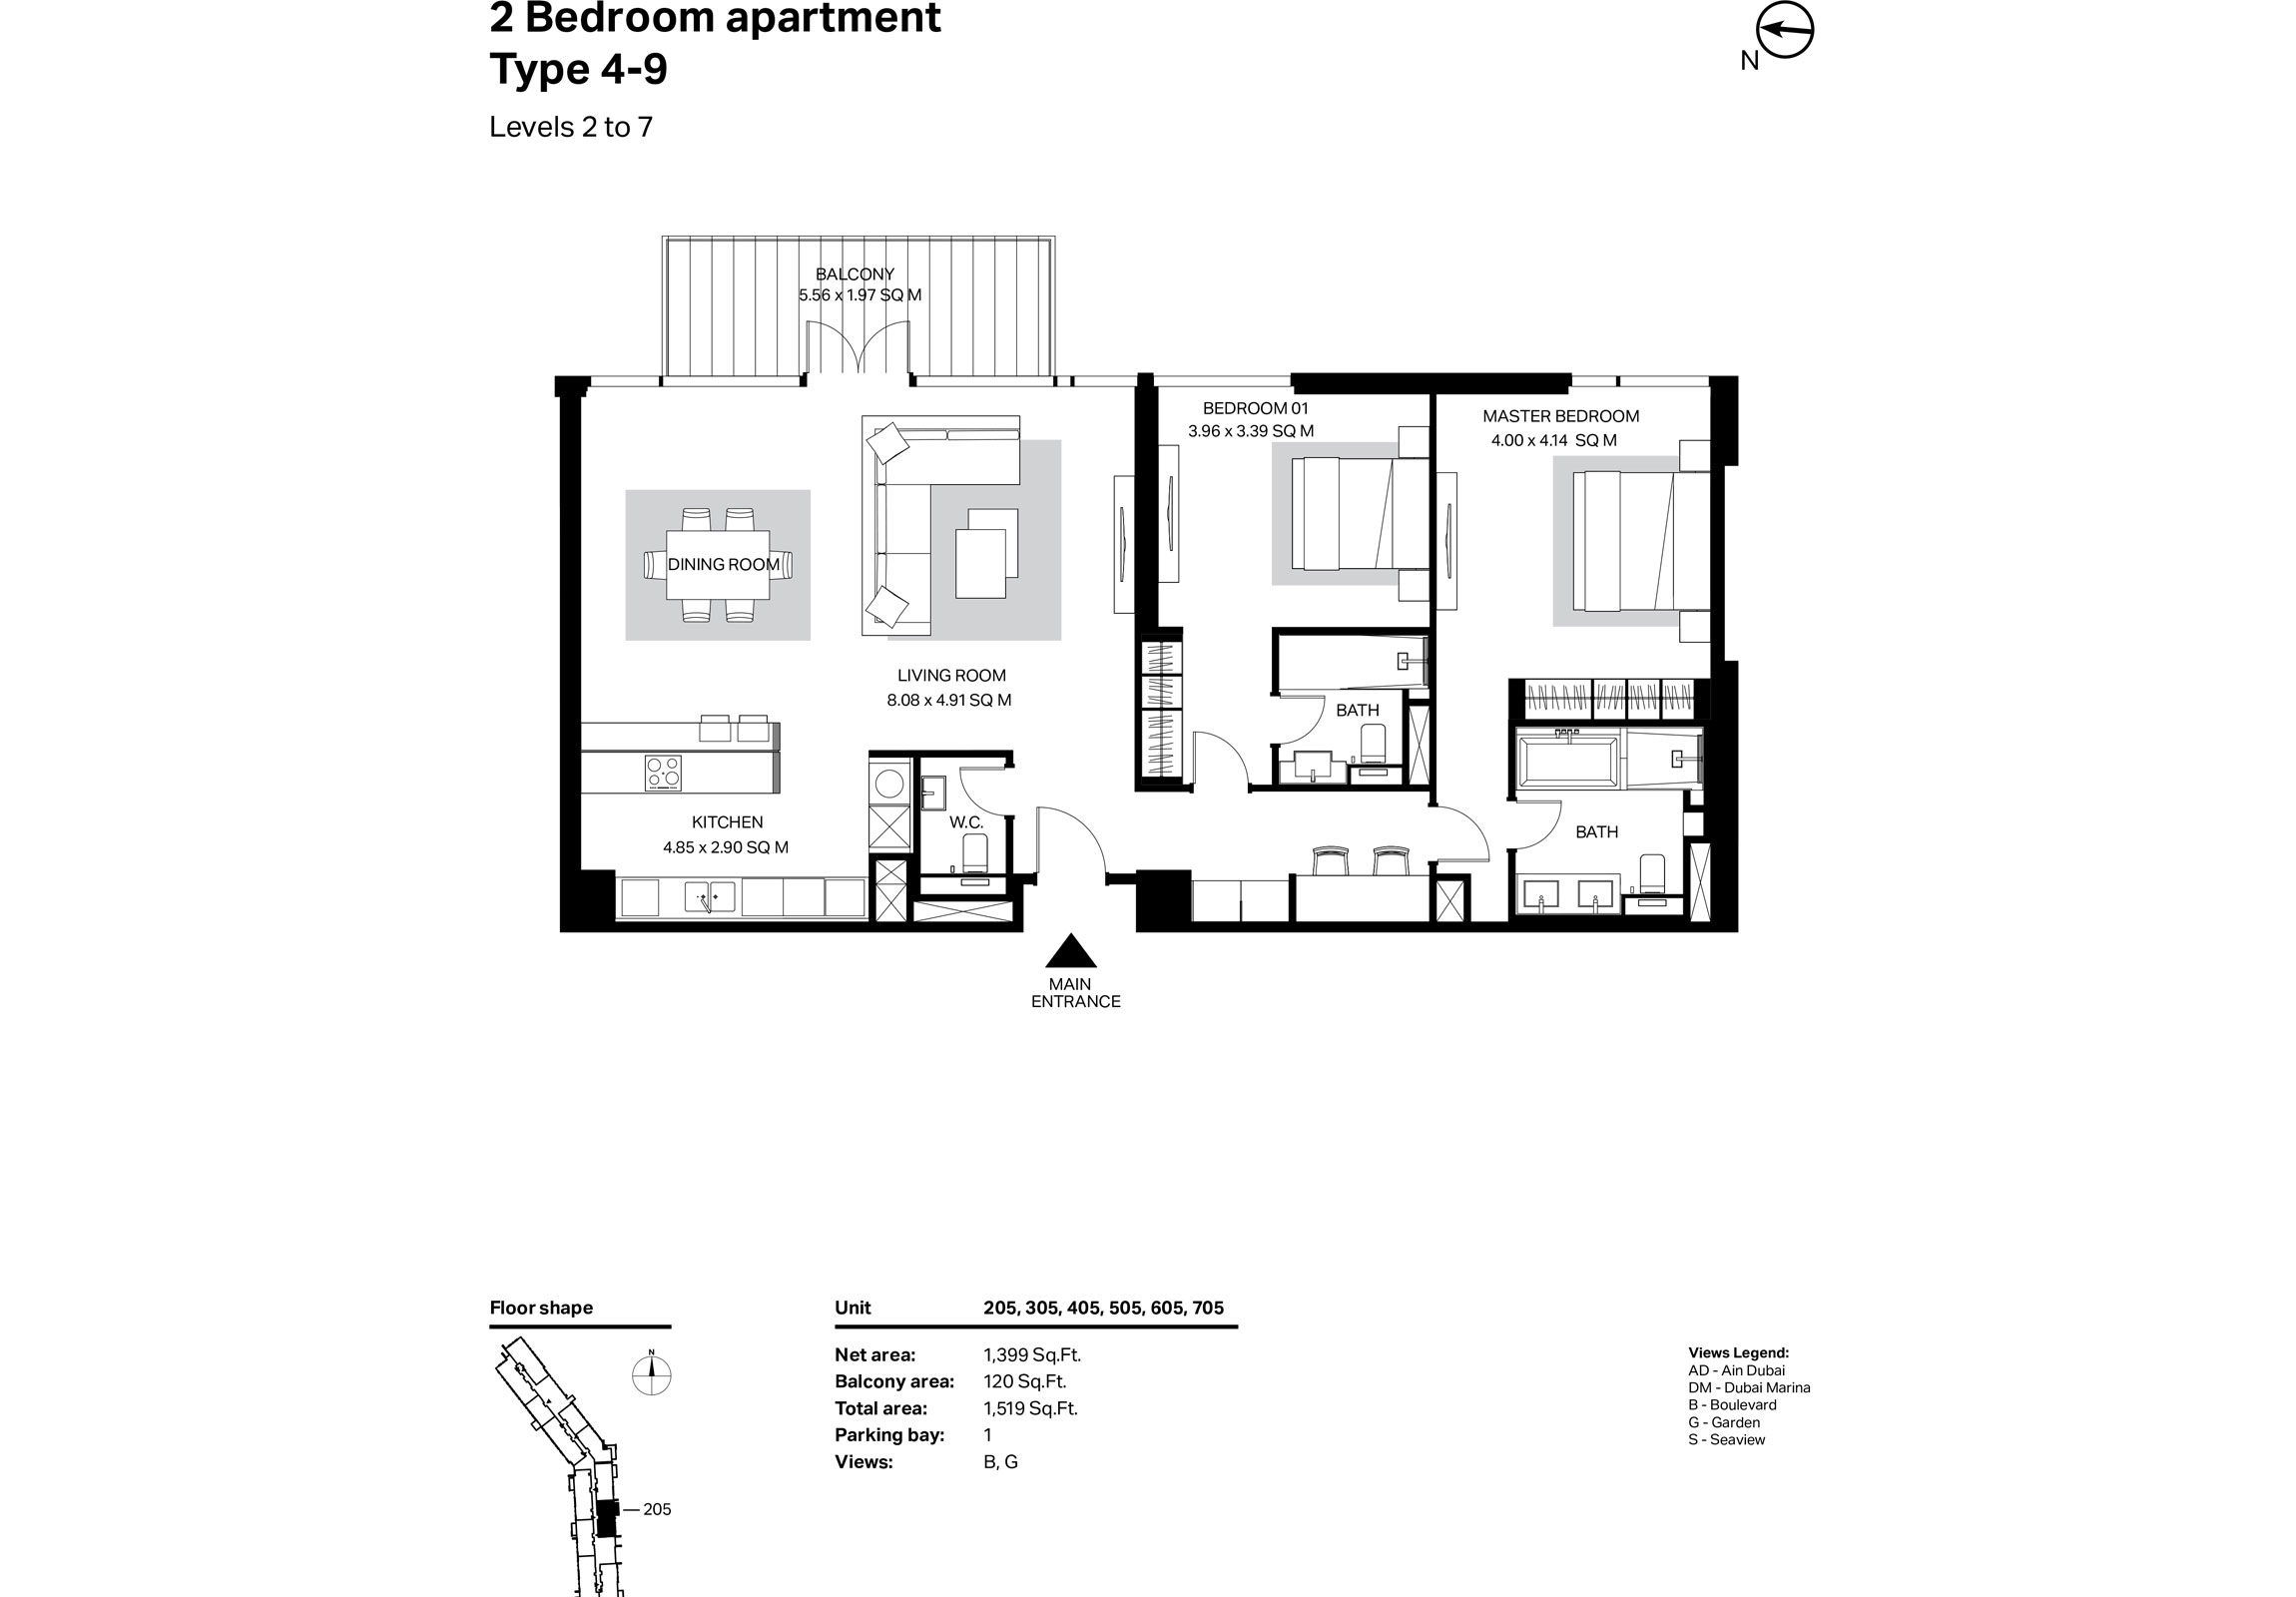 Building 2 - 2 Bedroom Type 4-9 Level 2 To 7 Size 1519    sq. ft.